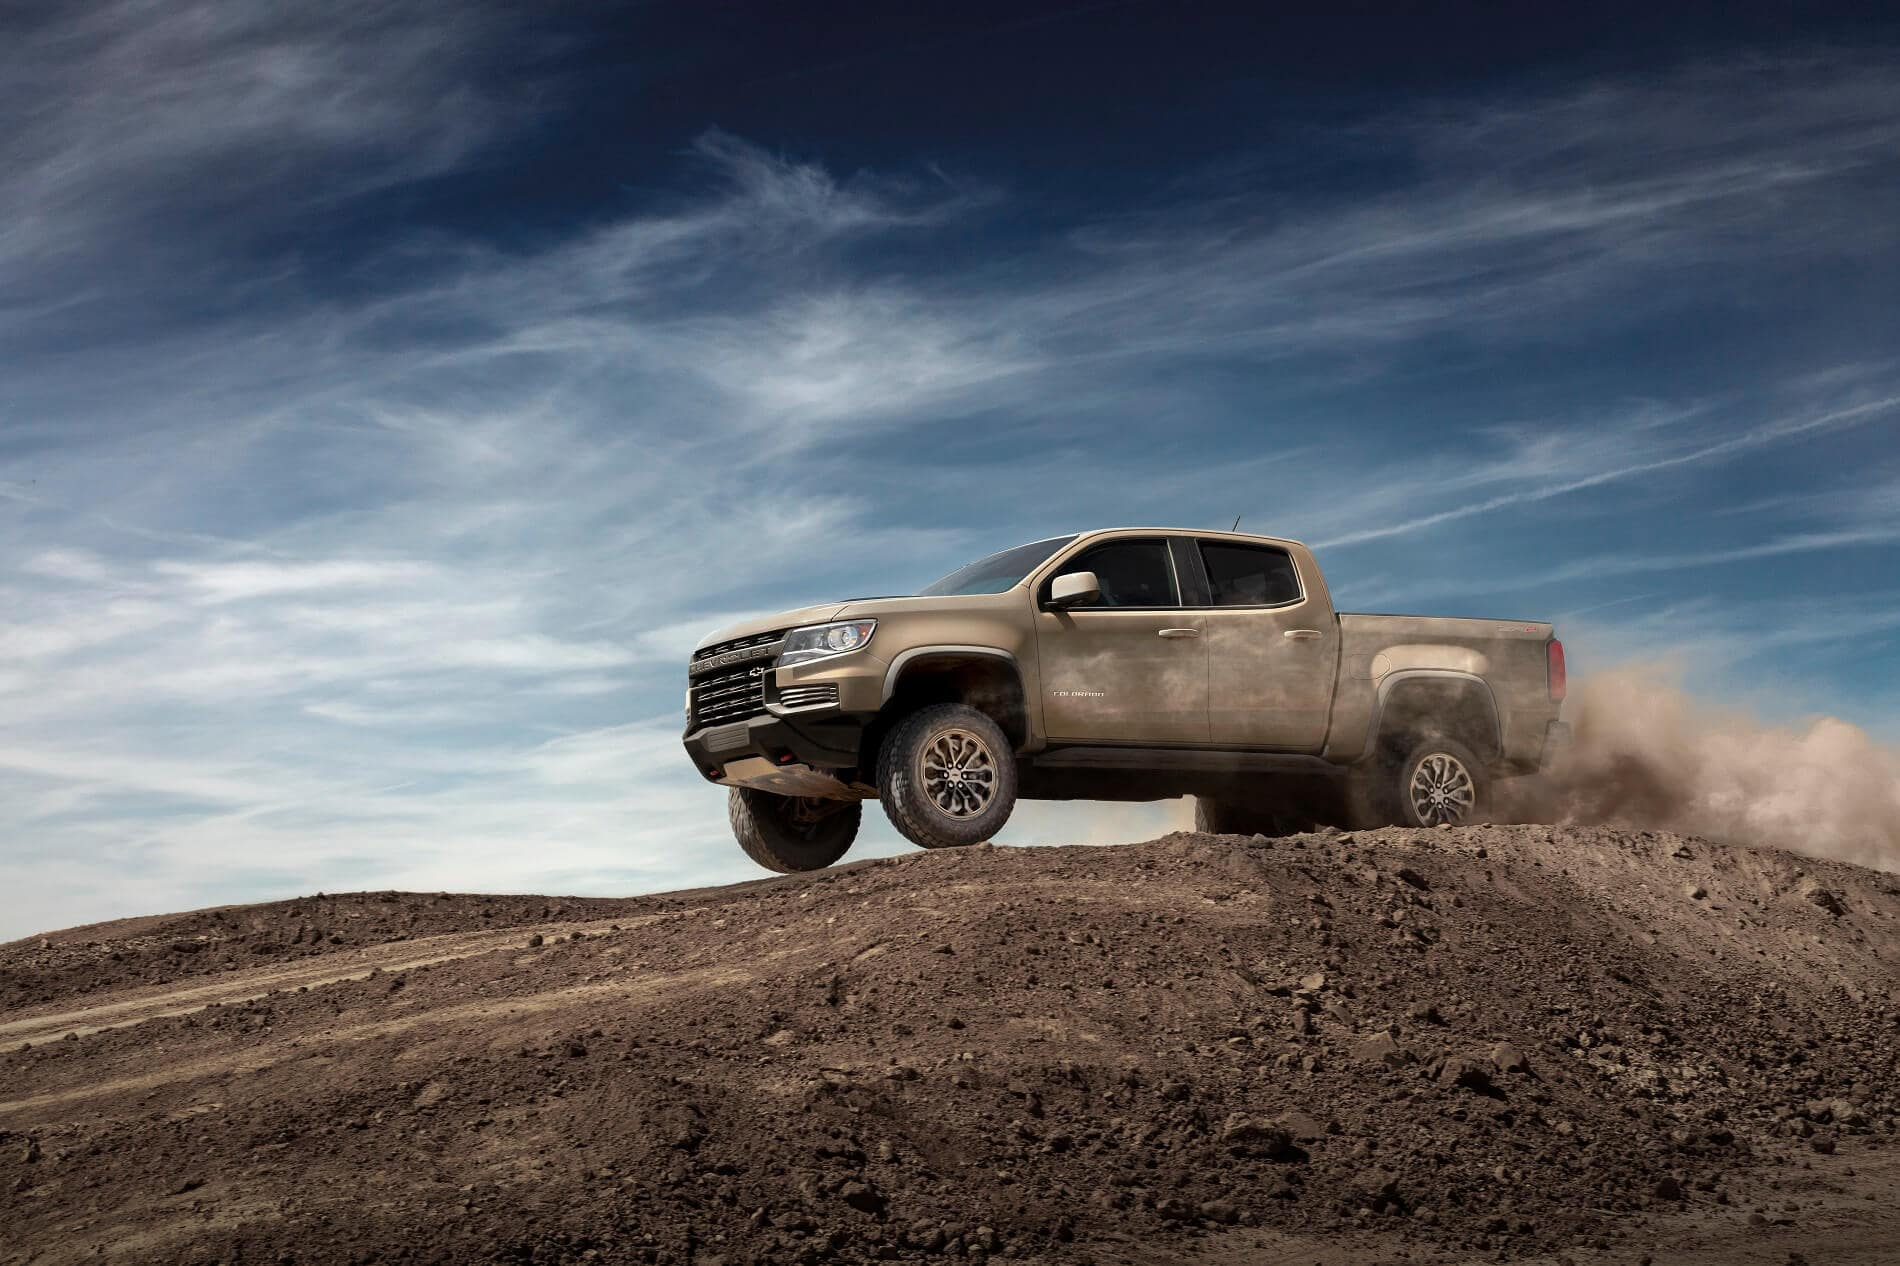 2021 Chevy Colorado Off-Roading Performance